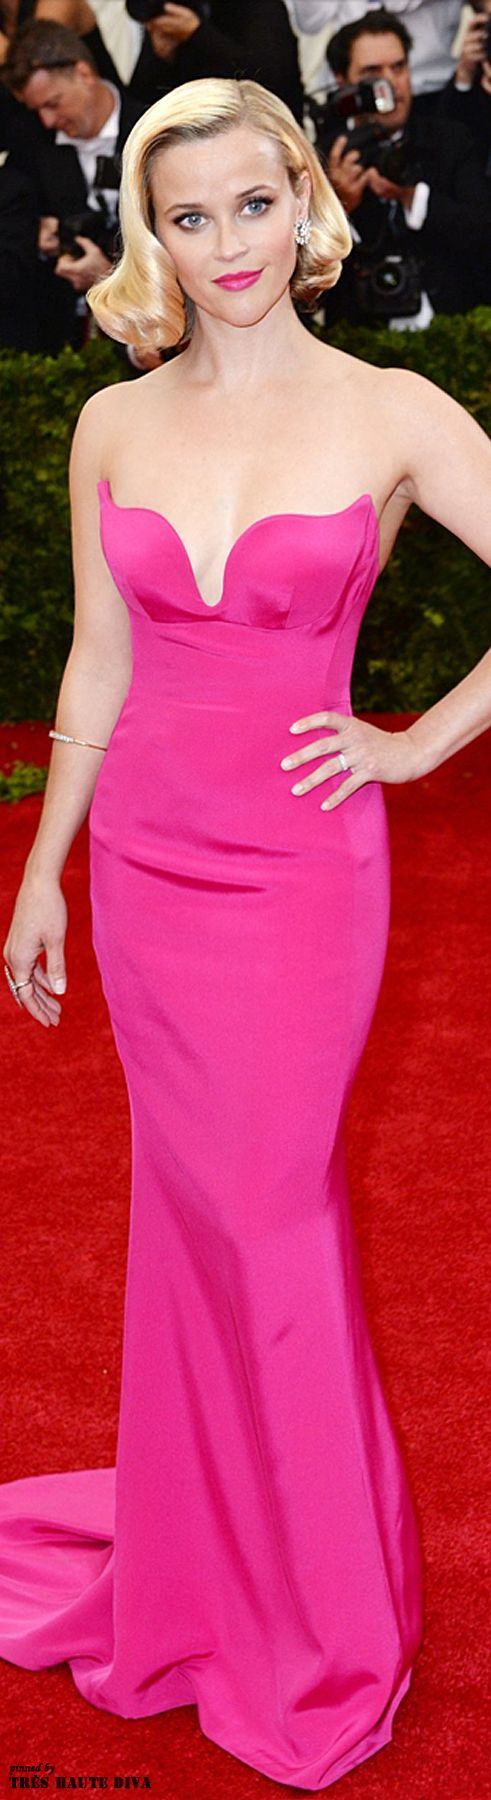 Reese Witherspoon in a Stella McCartney gown at the 2014 Met Gala jaglady #HauteCouture #RedCarpet